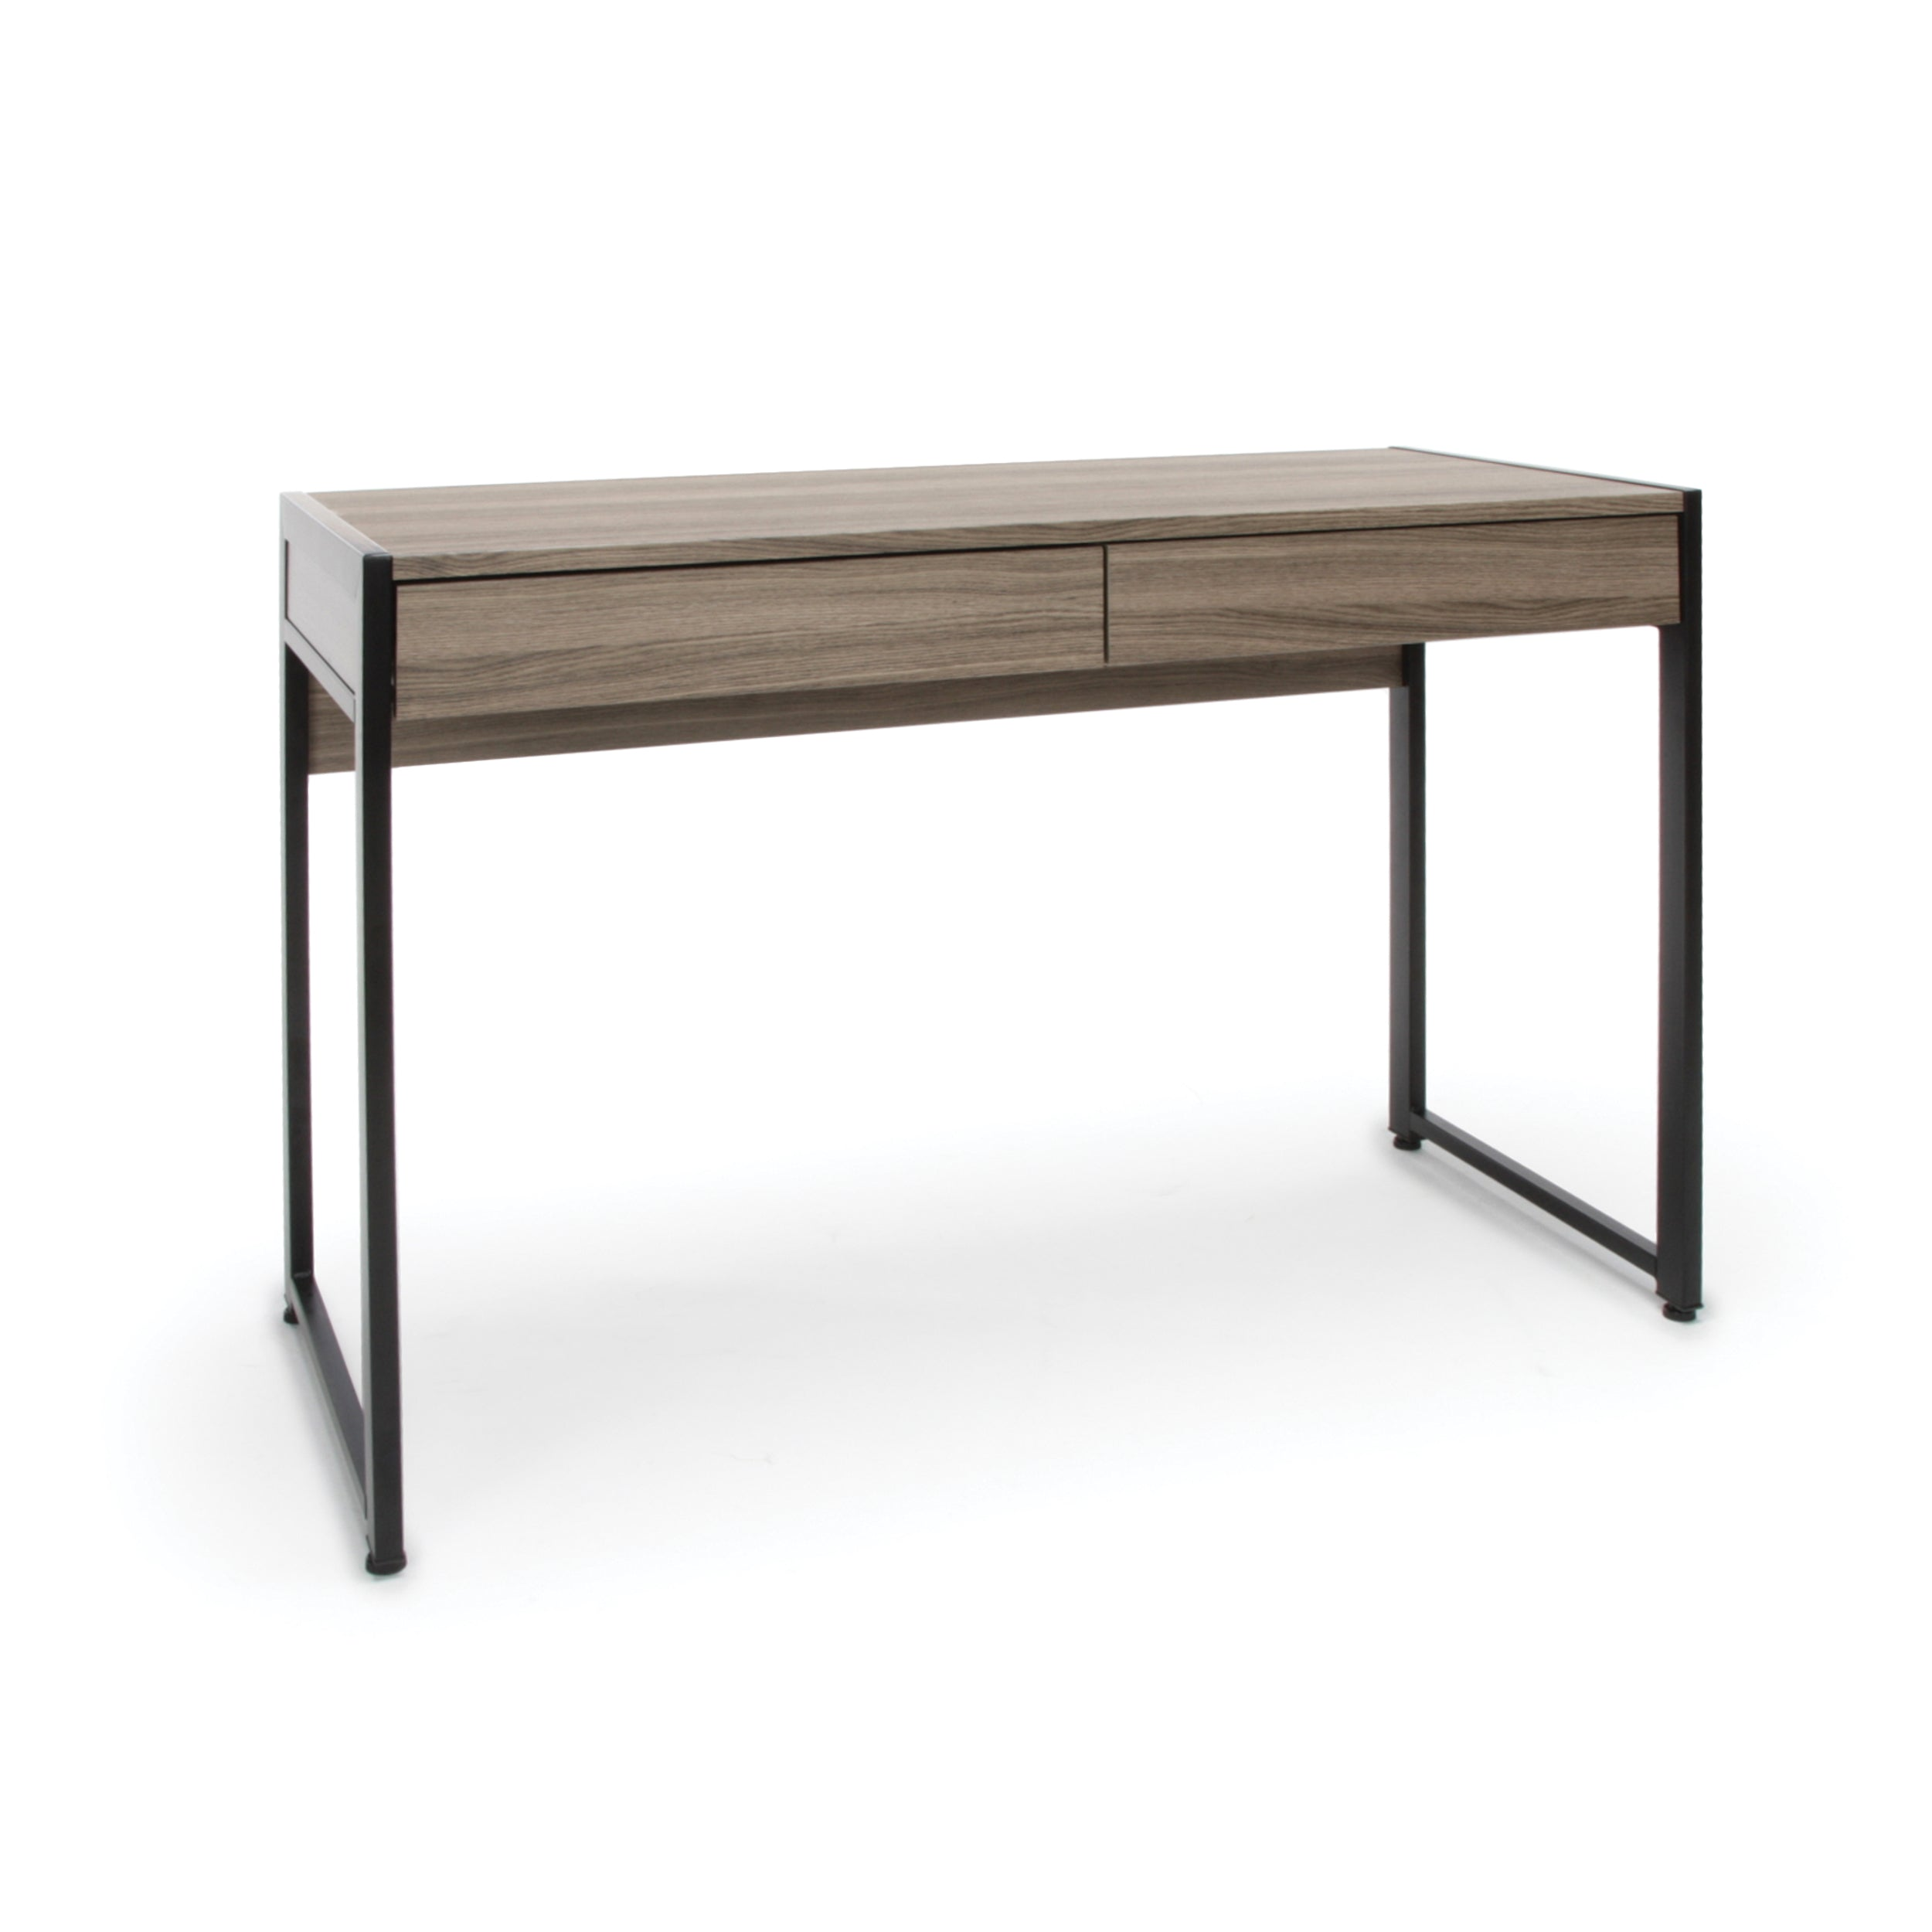 Model ESS-1002 Essentials by OFM 2-Drawer Office Desk